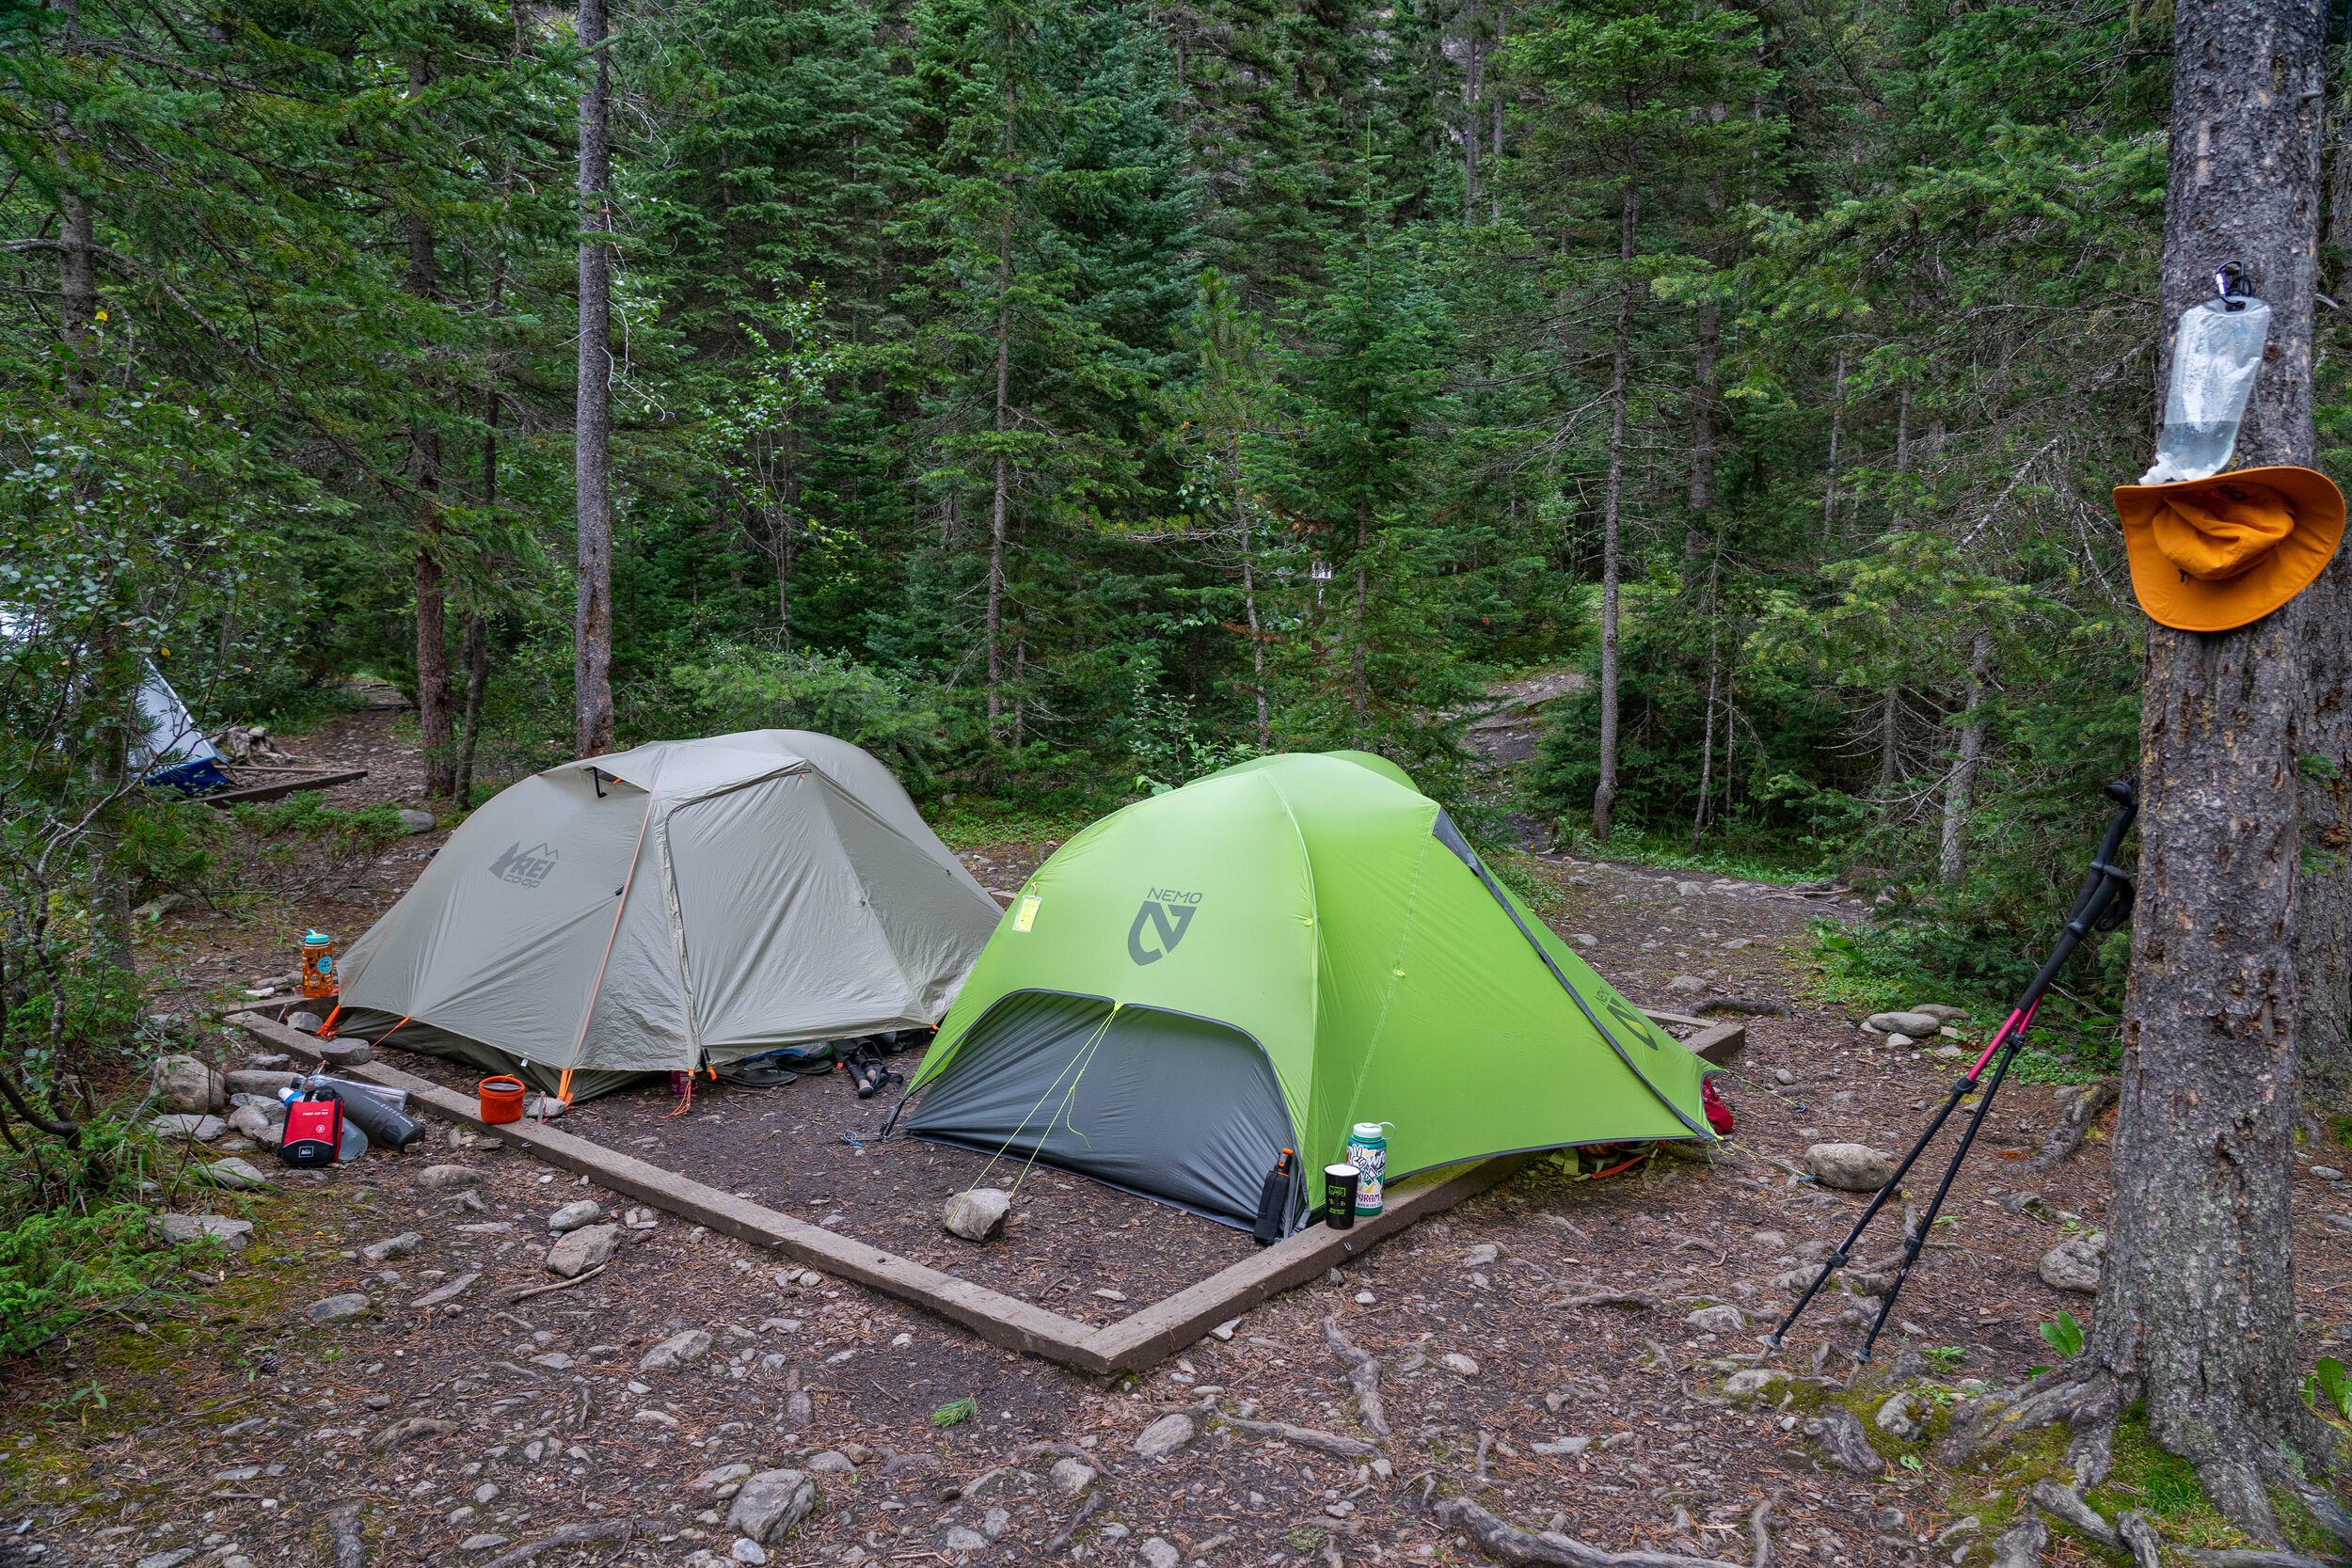 Whitehorn tentpads are unfortunately right next to the trail, and right next to each other.